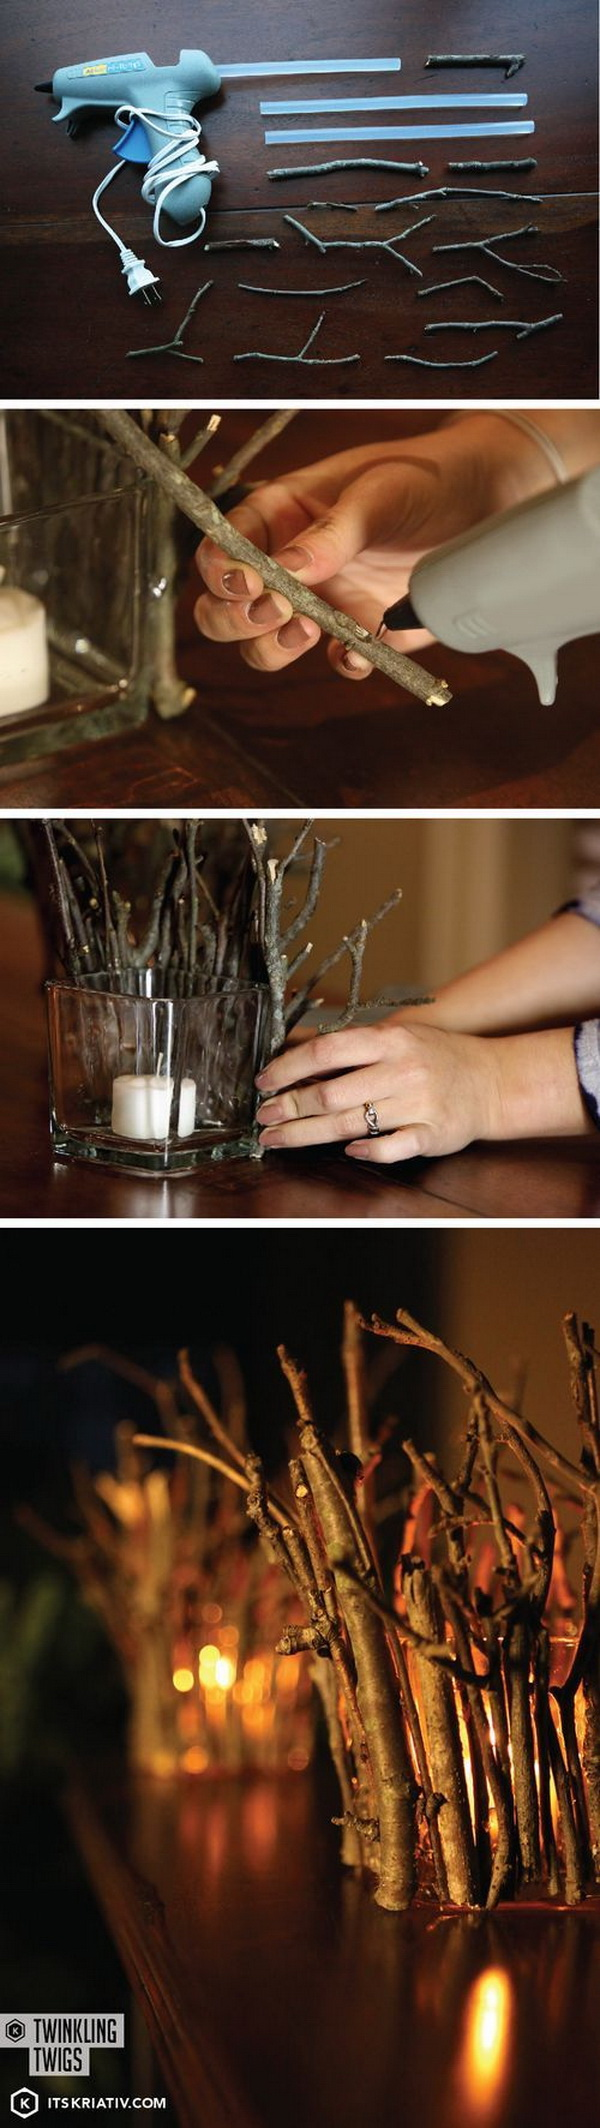 DIY Twig Candle Holders. A beautiful, rustic way to decorate your home with the candles made with twigs.